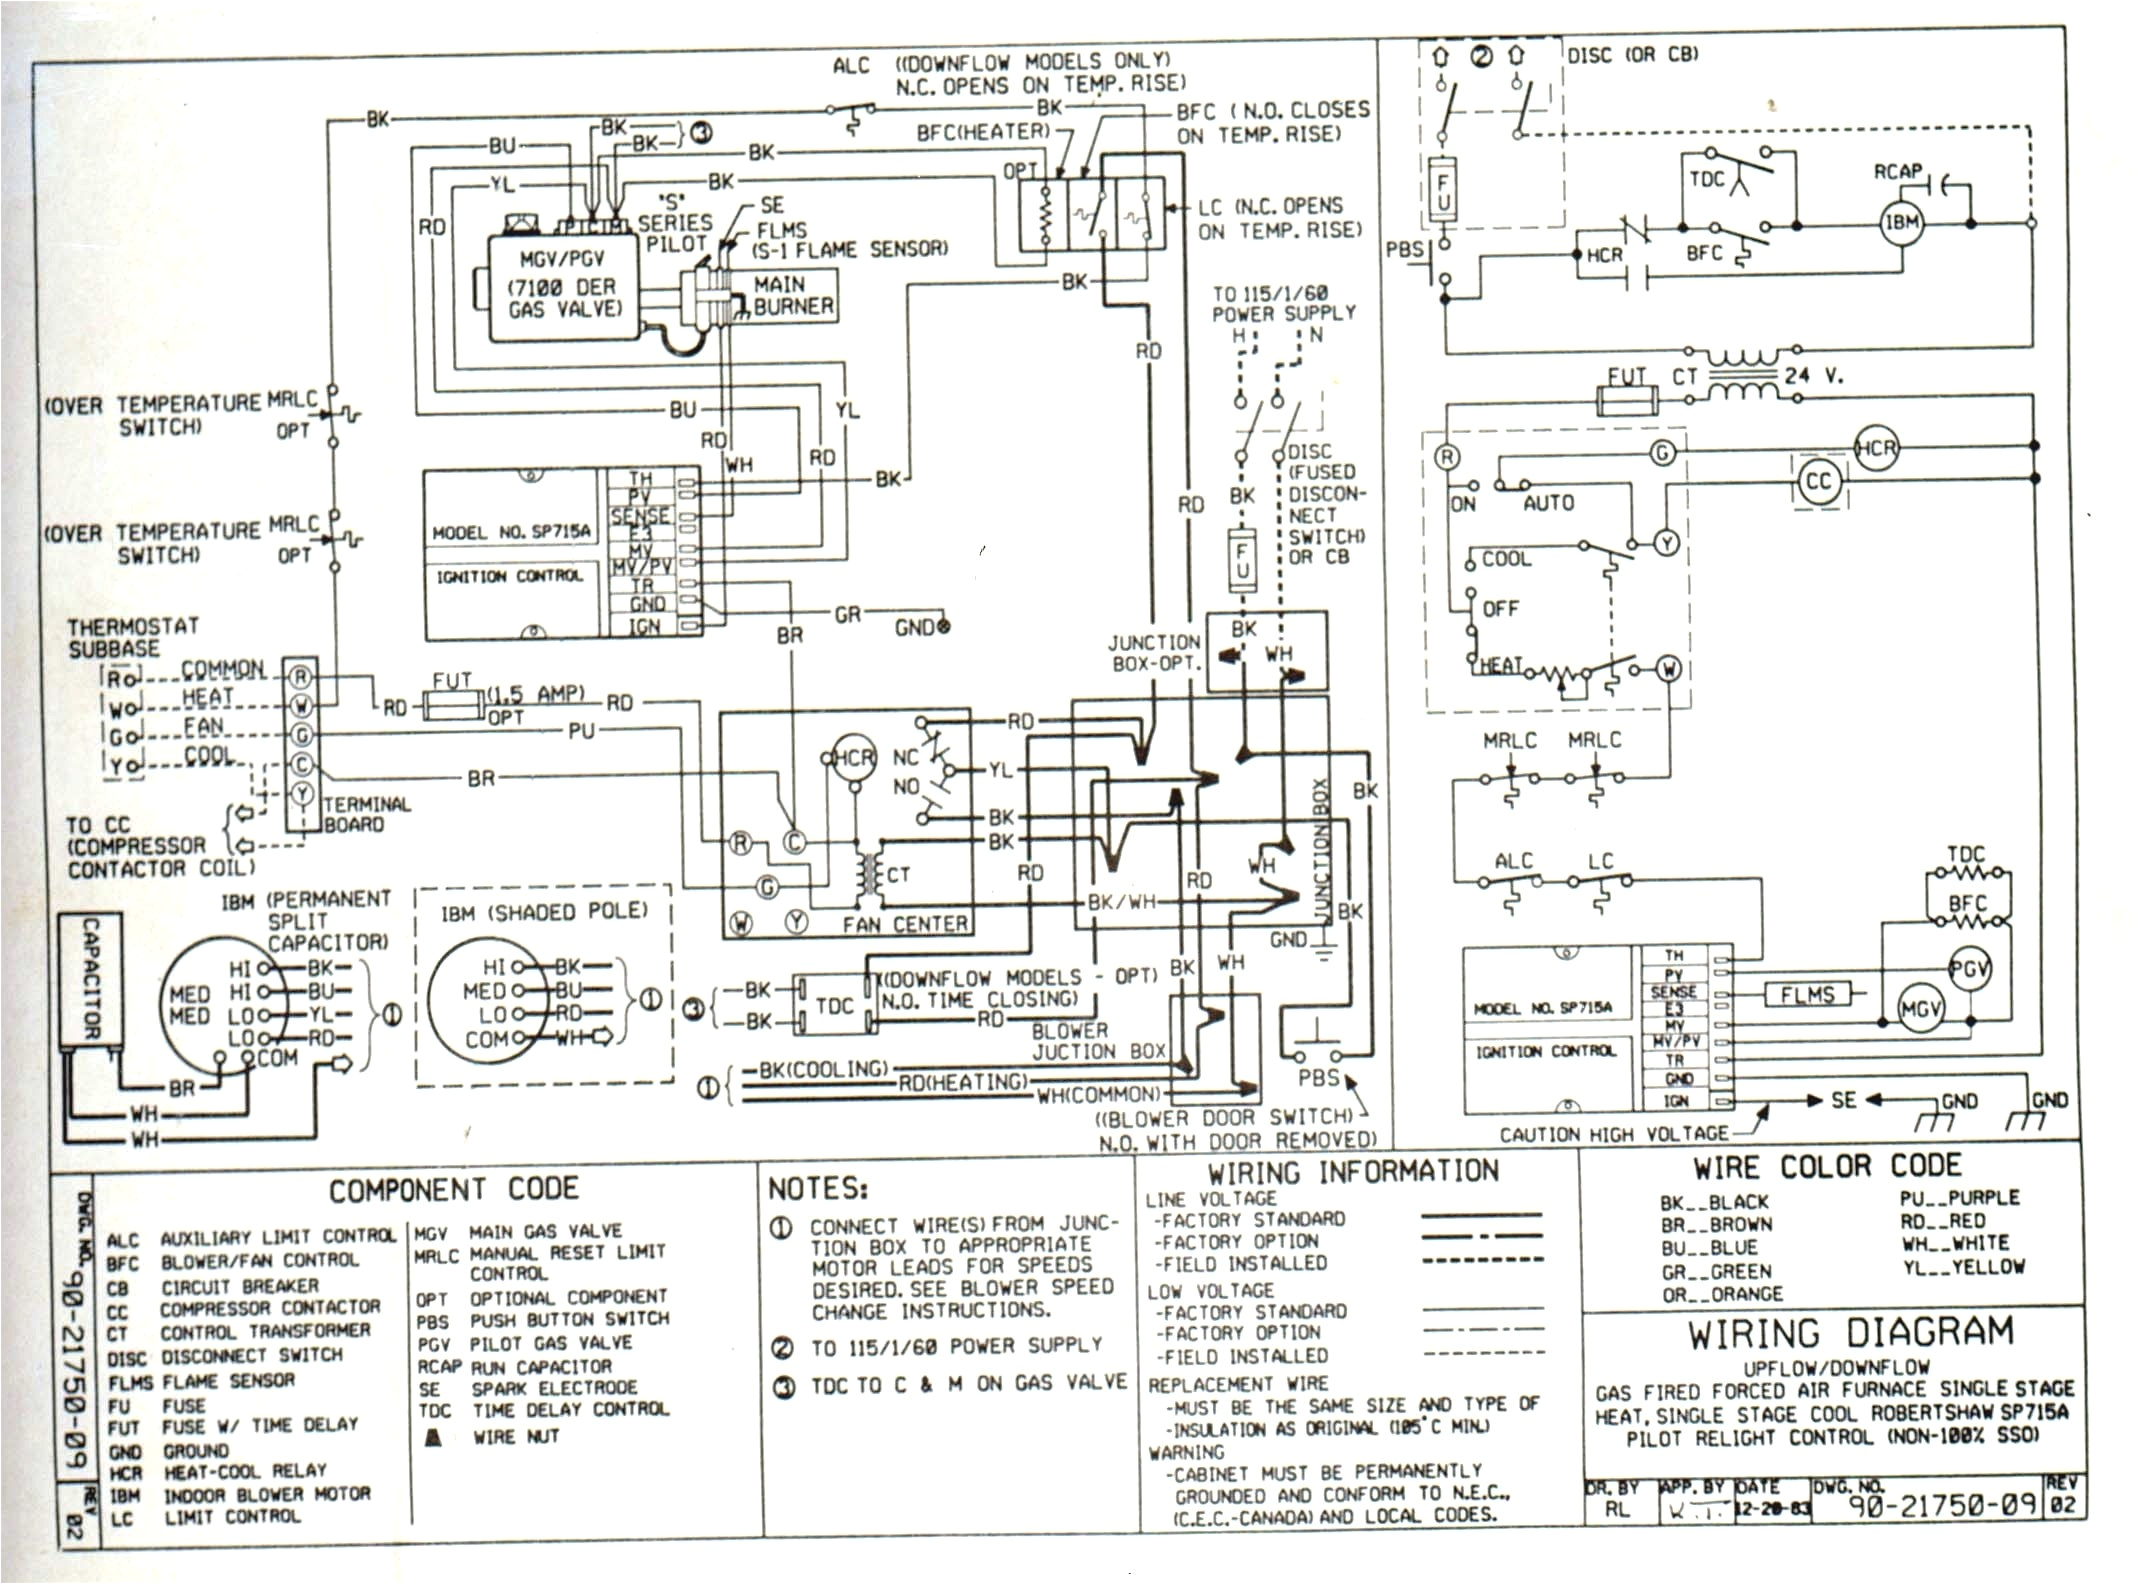 Intertherm Heat Pump Wiring Diagram Maytag Heat Pump Wiring Diagram Wiring Diagram Blog